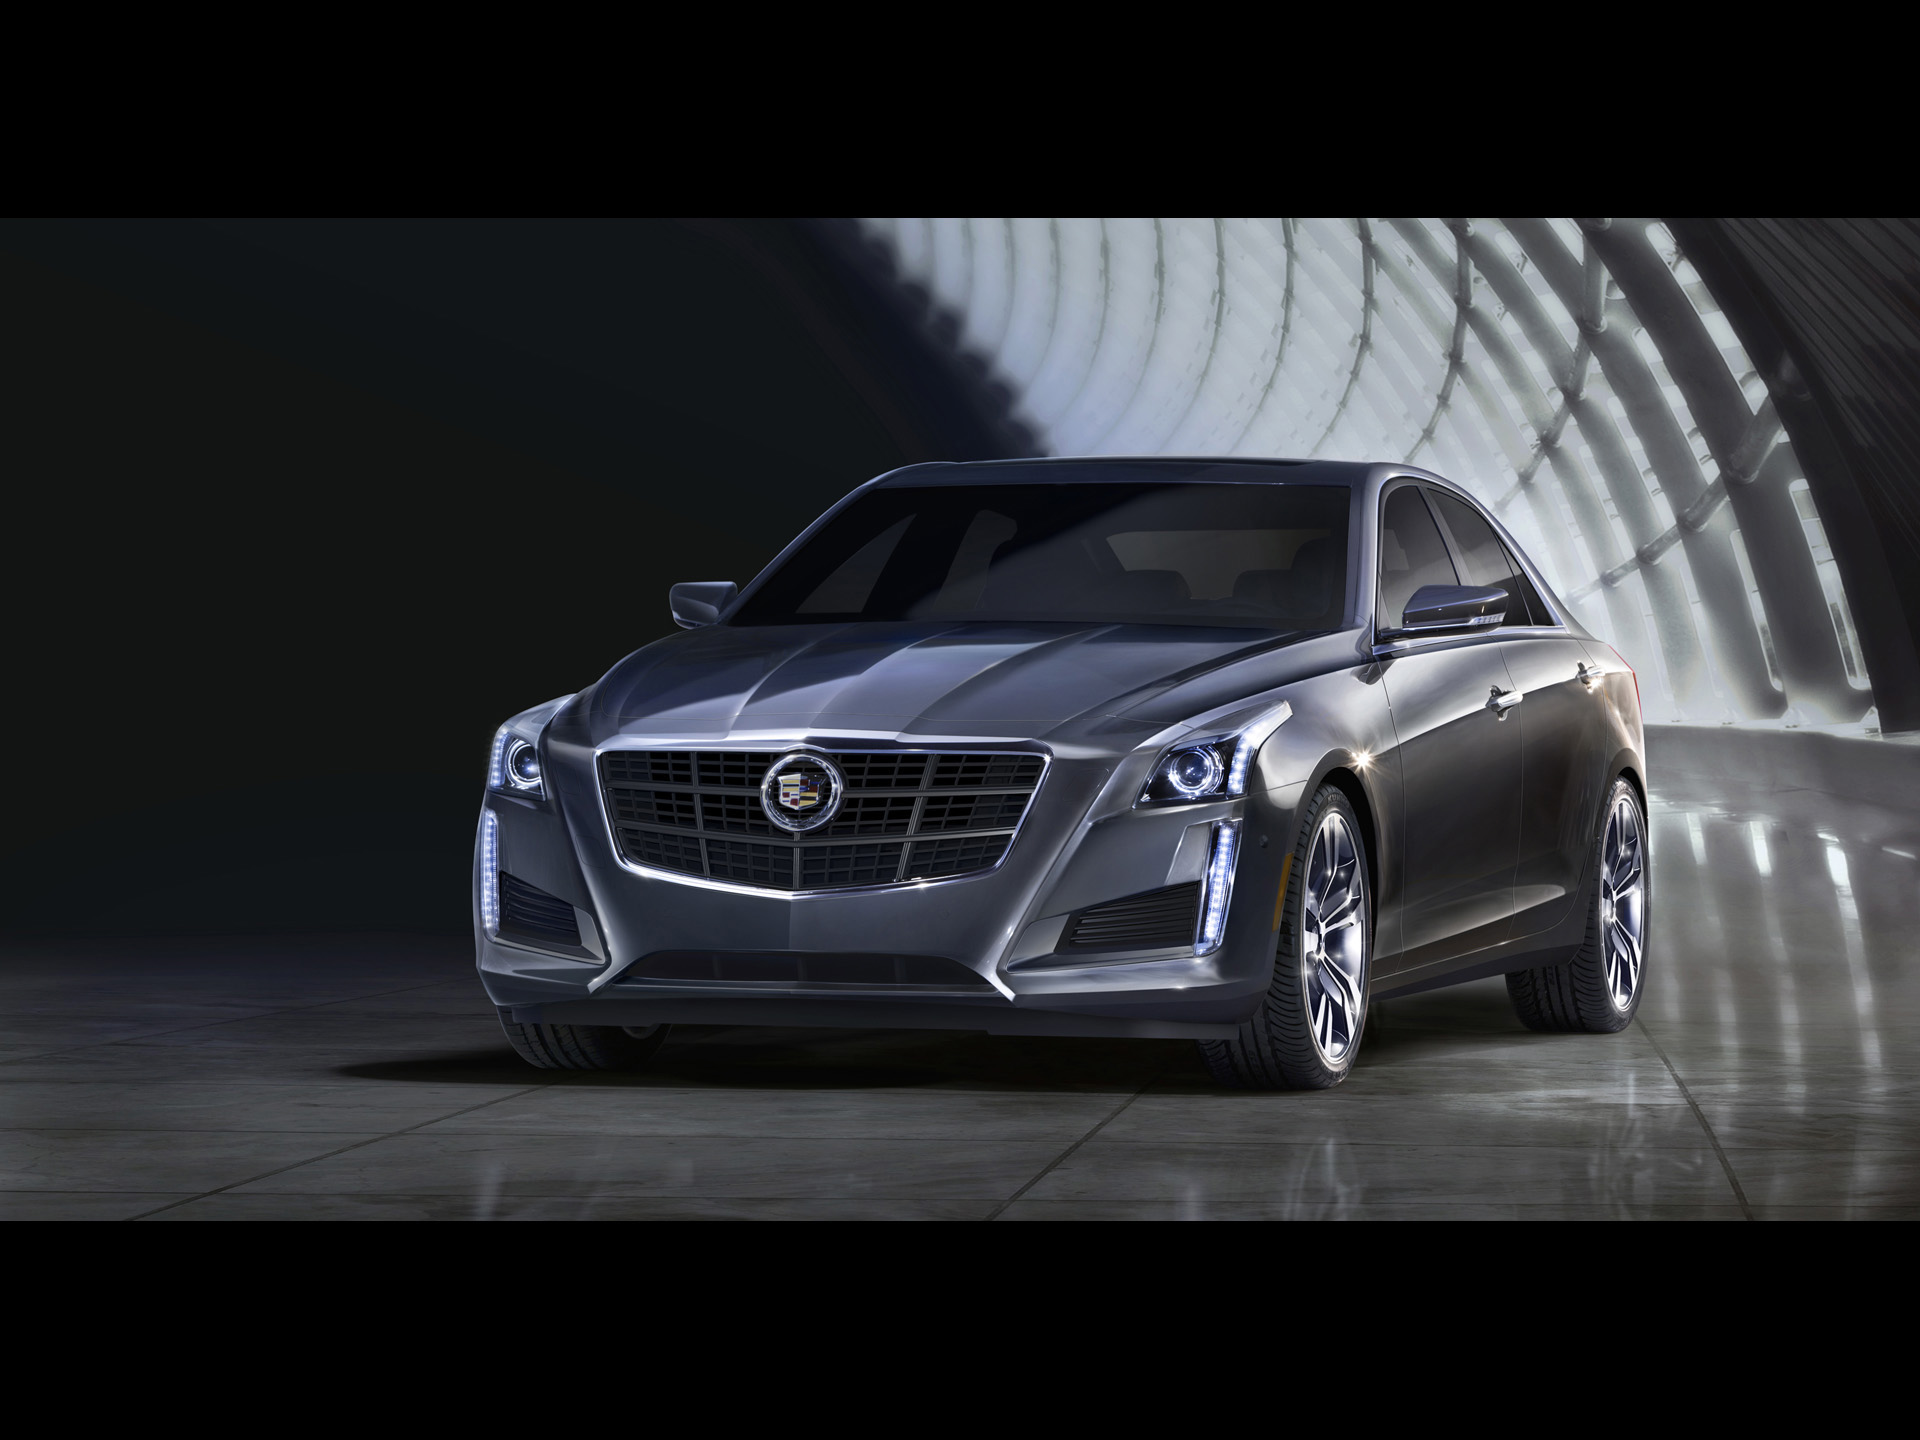 click to free download the wallpaper--Top Car Pics of Cadillac CTS, Seen from Front Angle, It Shall Strike Quite an Impression 1920X1440 free wallpaper download